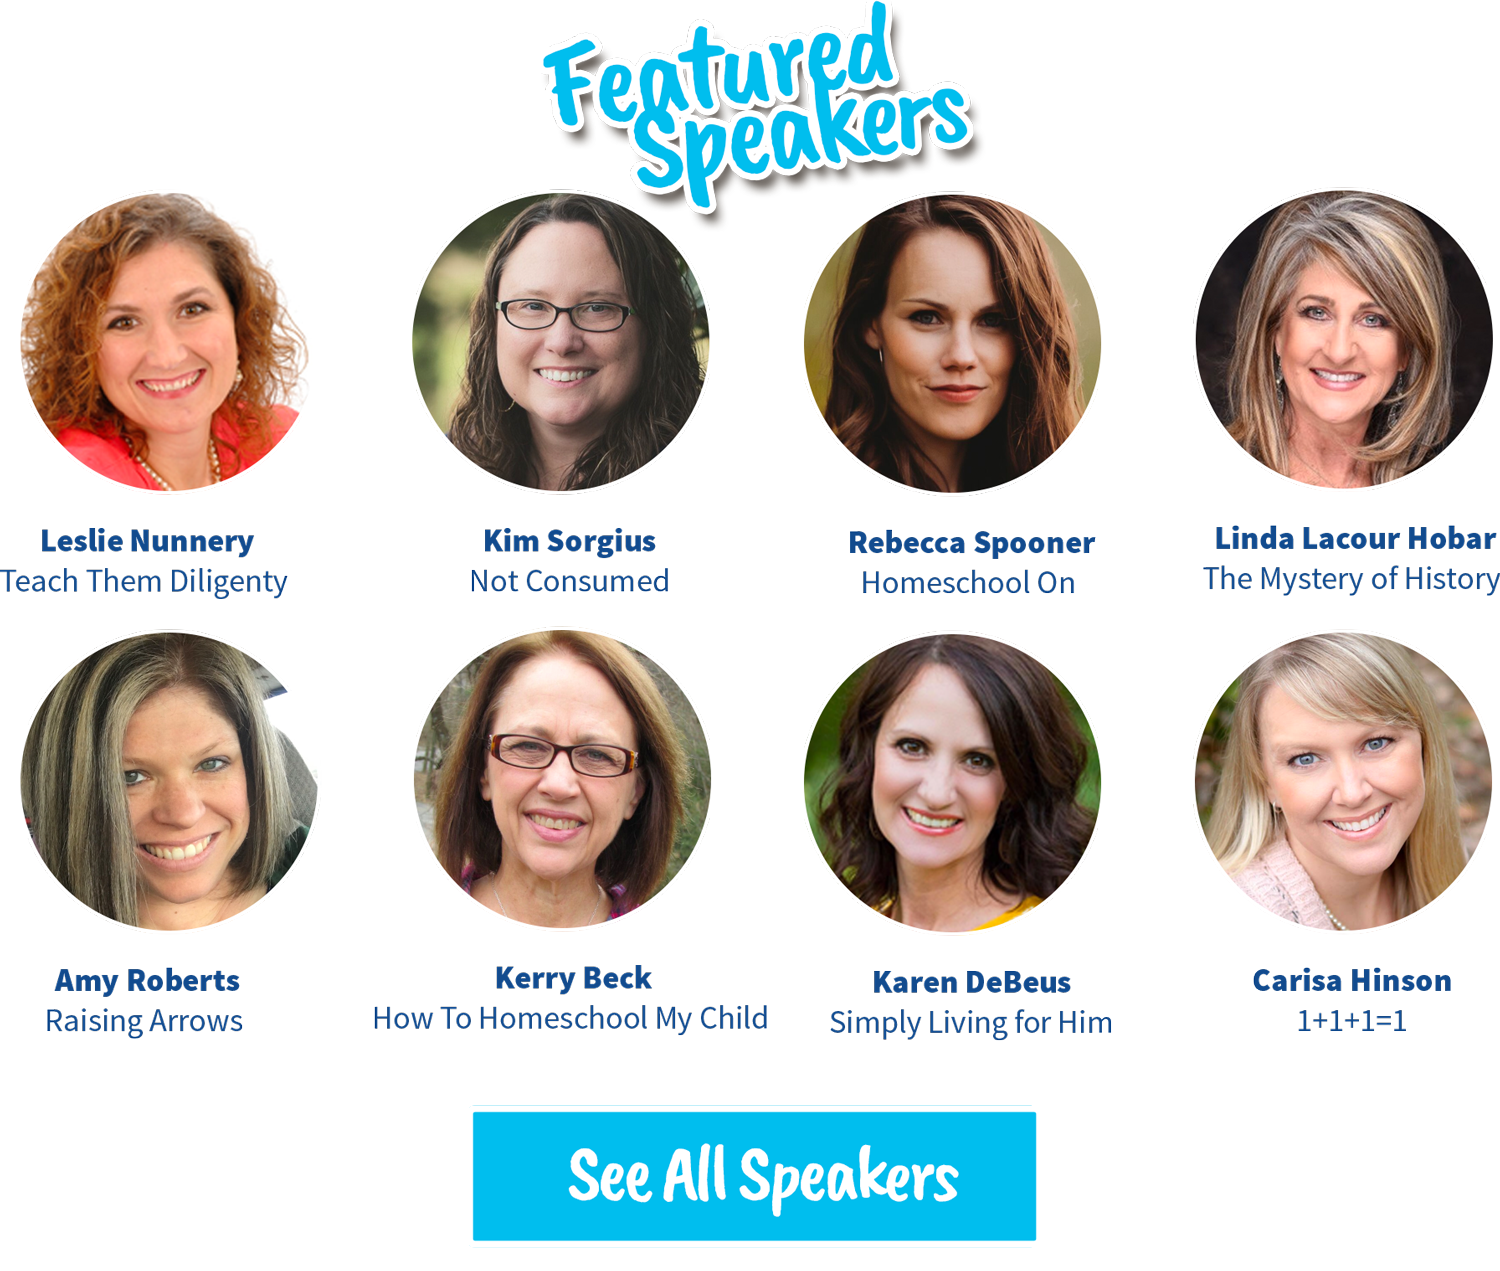 Meet the Back2Homeschool Speakers